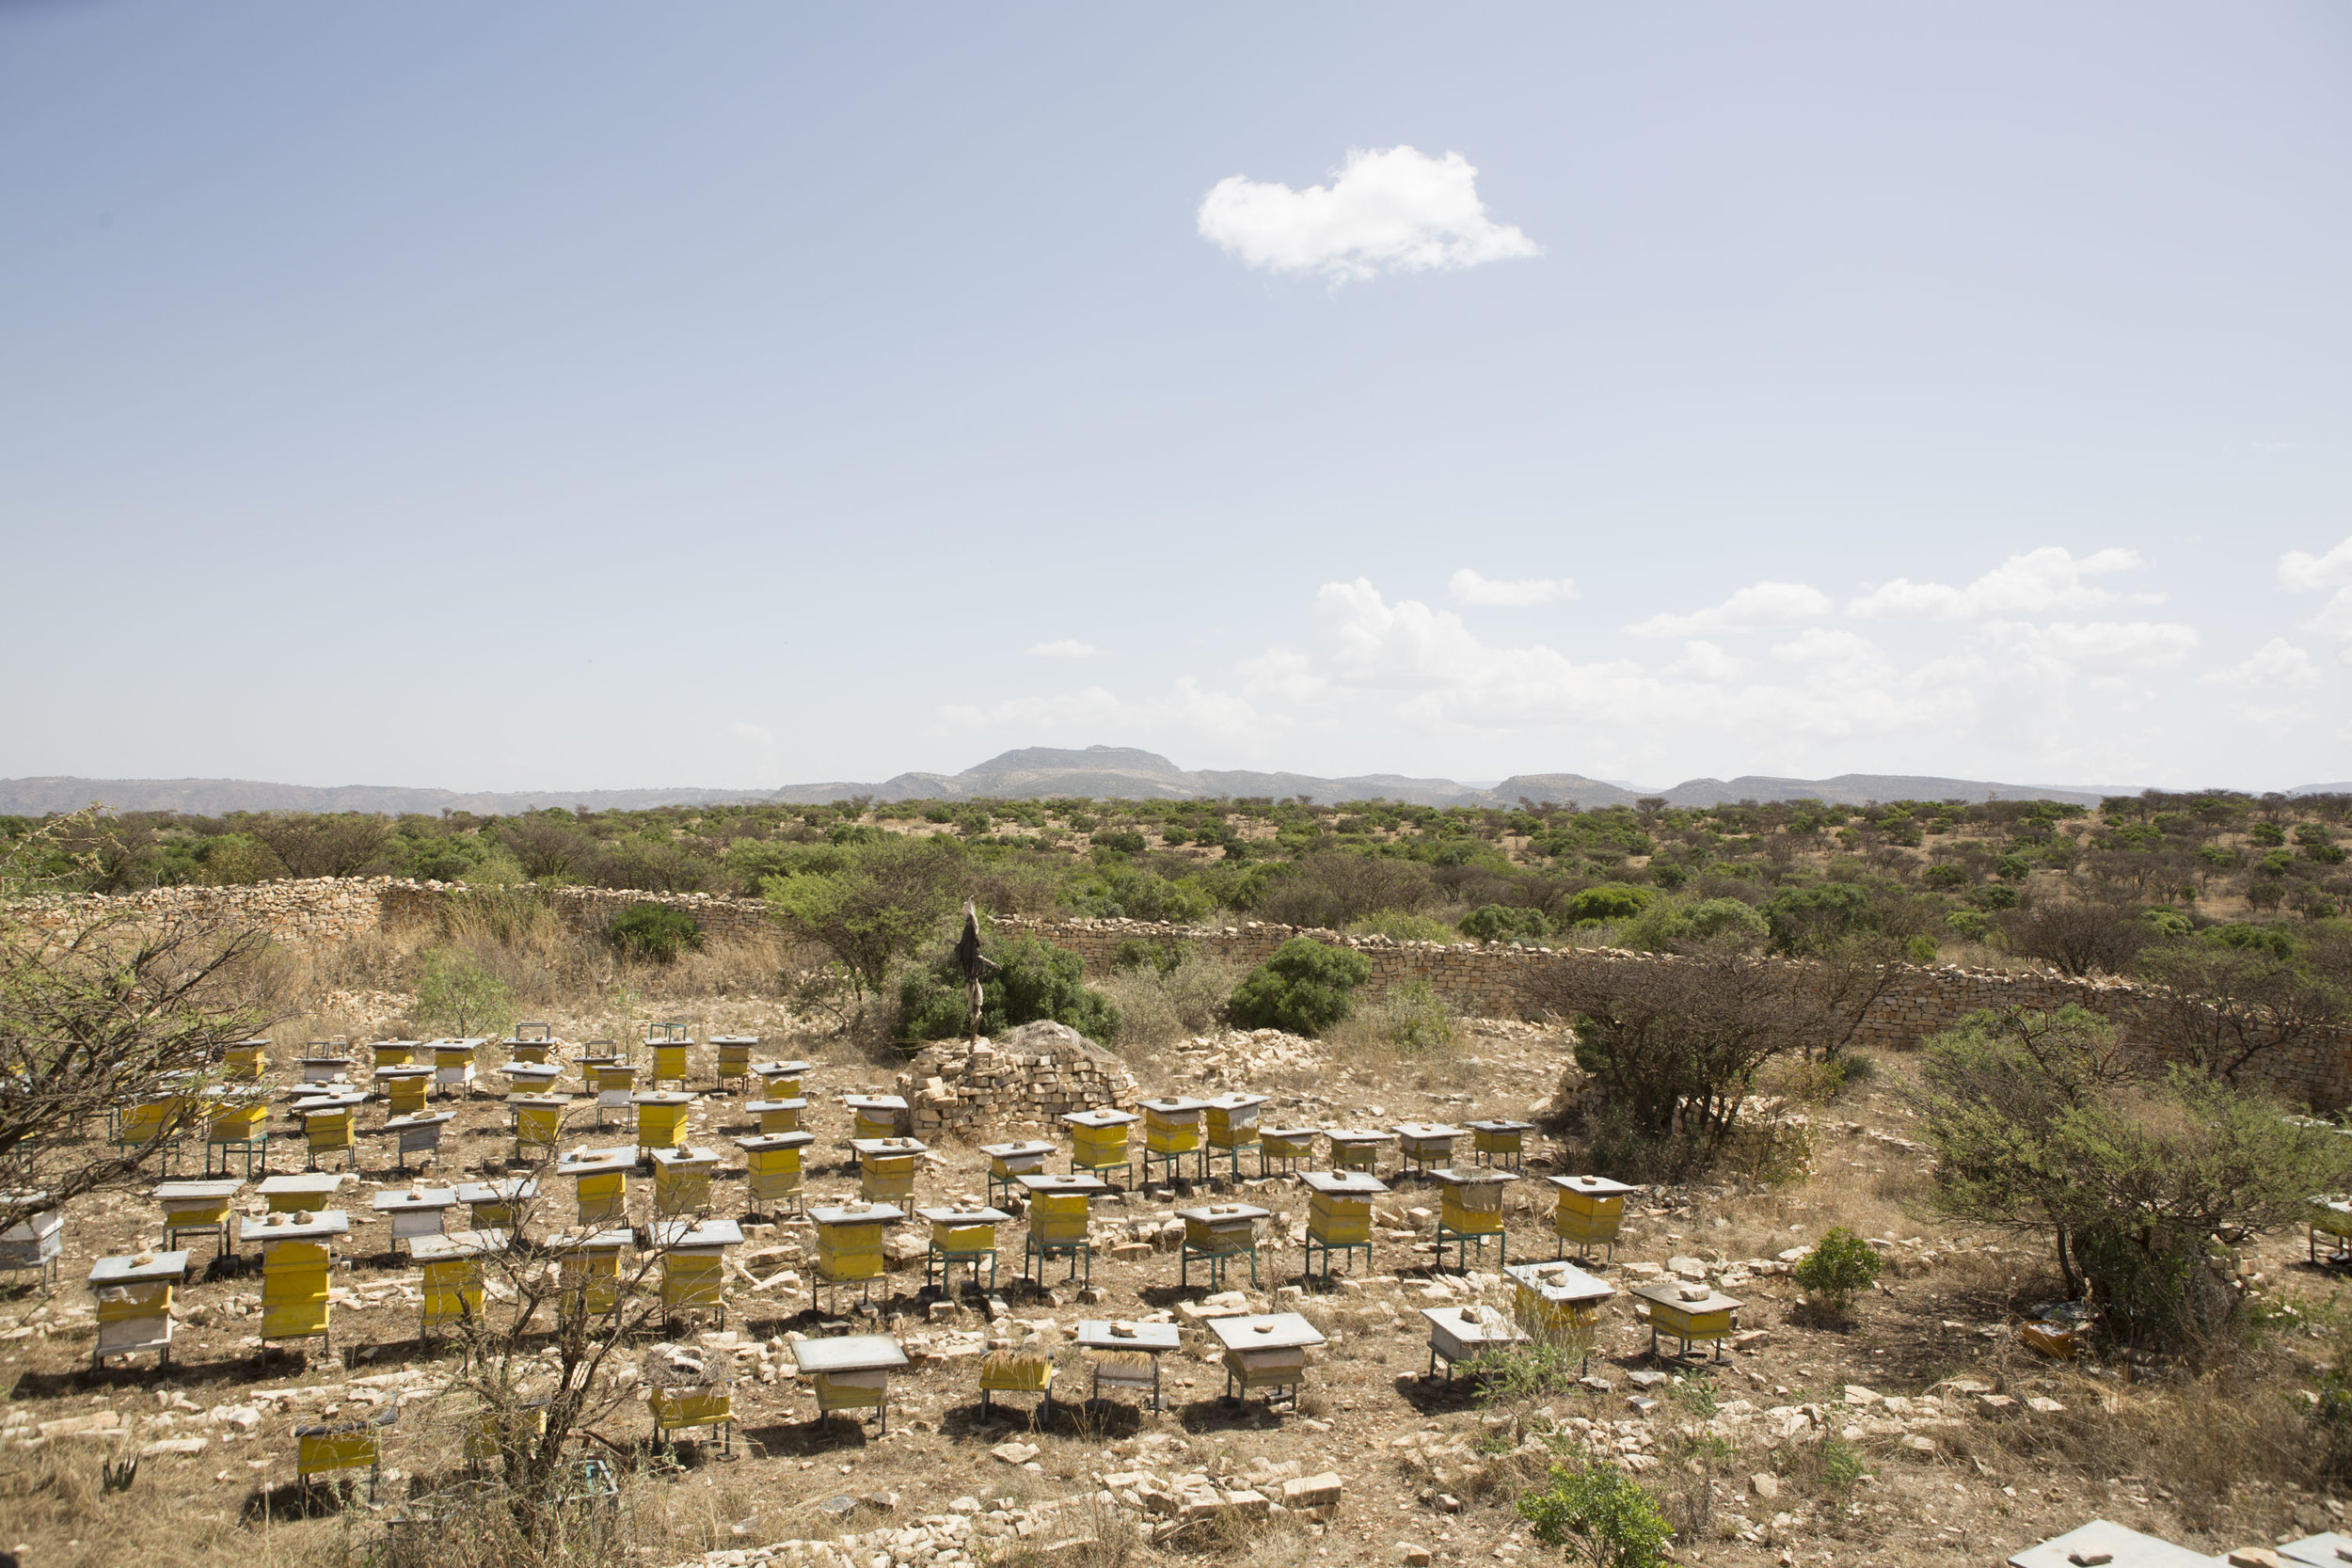 Bee hives are pictured on a small farm outside of Wukro, in the Tigray region in northern Ethiopia on 29 March 2017. Tigray is known for producing high quality honey, and is Ethiopia's major producer of honey. AFP Photo / Zacharias Abubeker